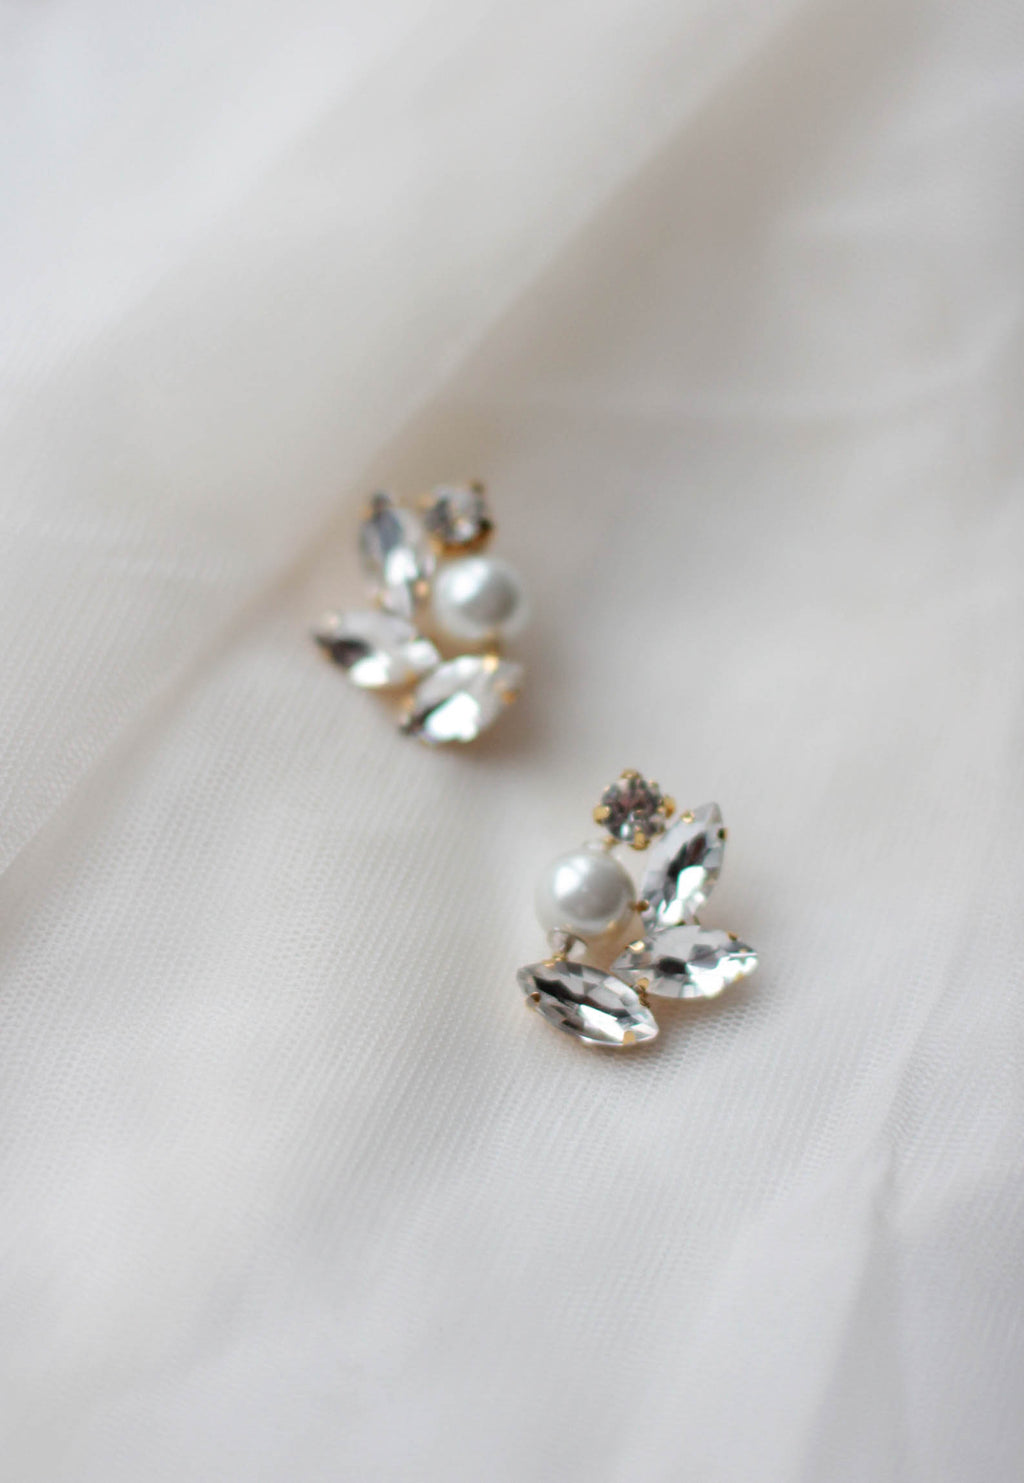 Bridal Bridesmaid Earrings Jewelry Gift for Bridesmaids